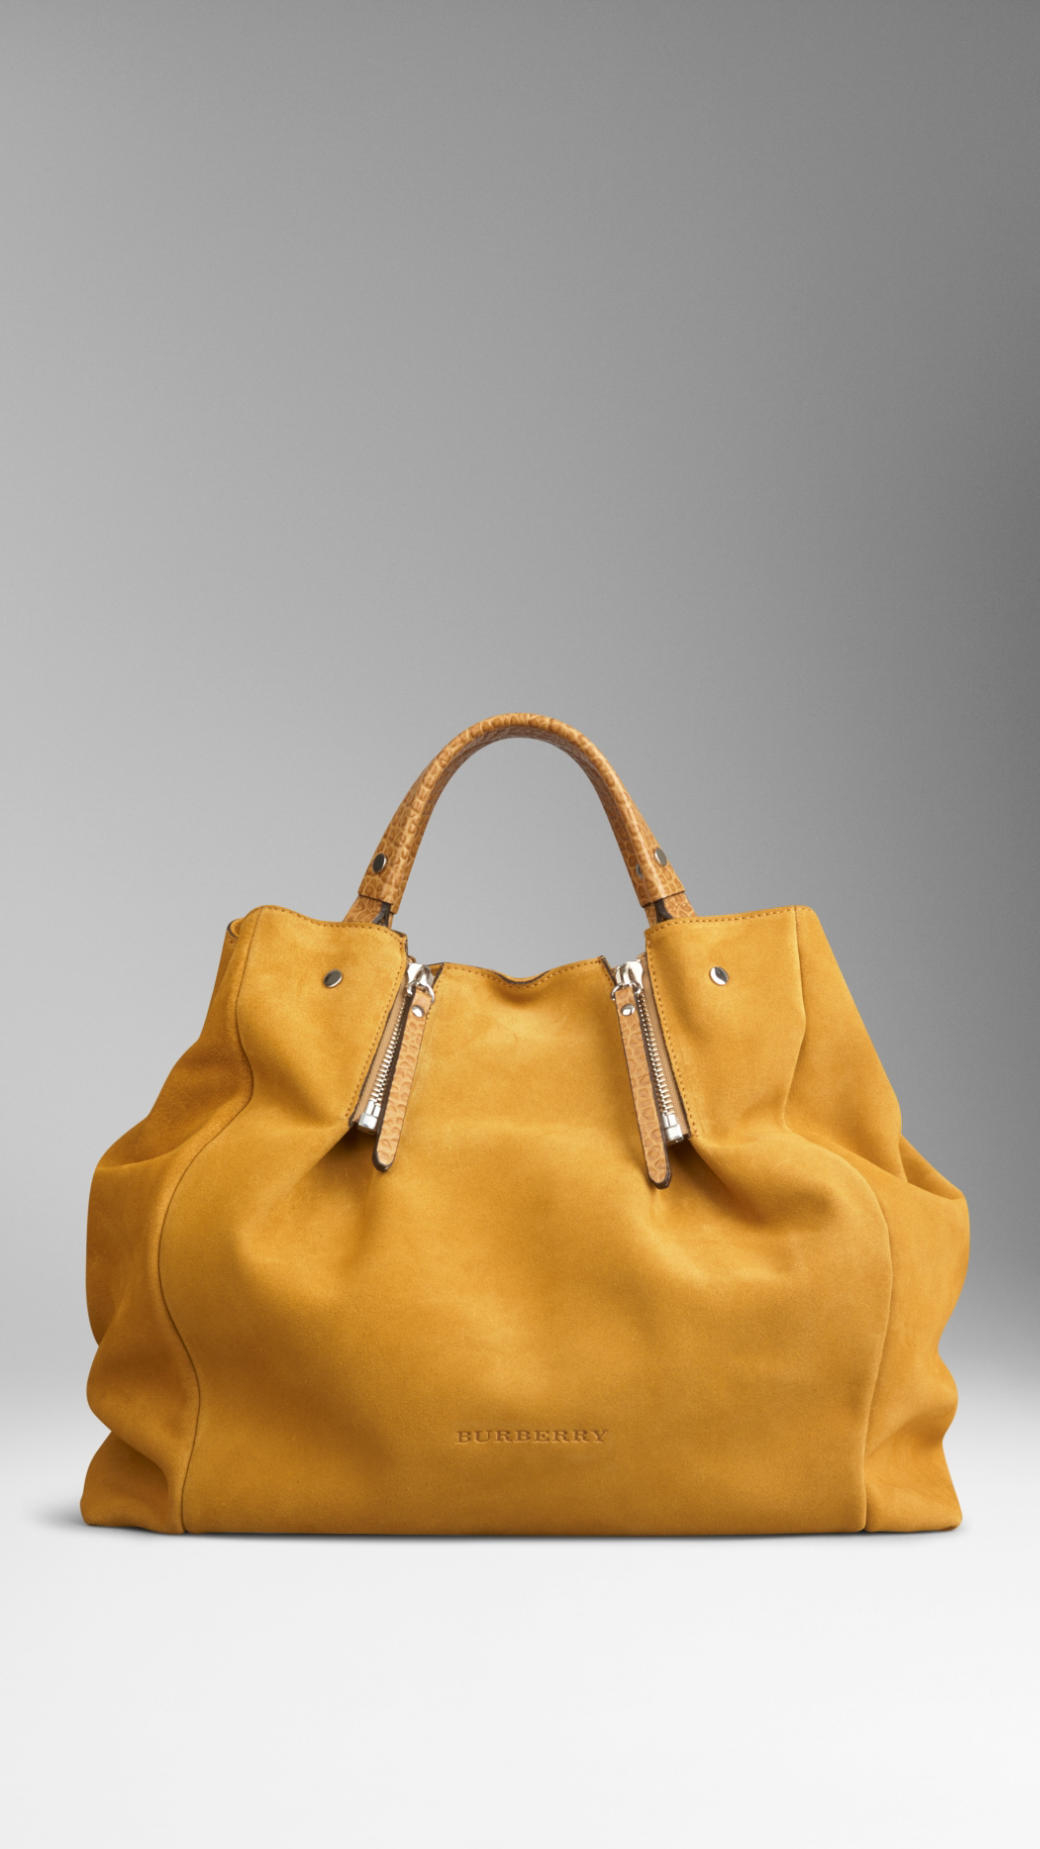 cd4f374af467 Burberry Large Suede Tote Bag in Yellow - Lyst